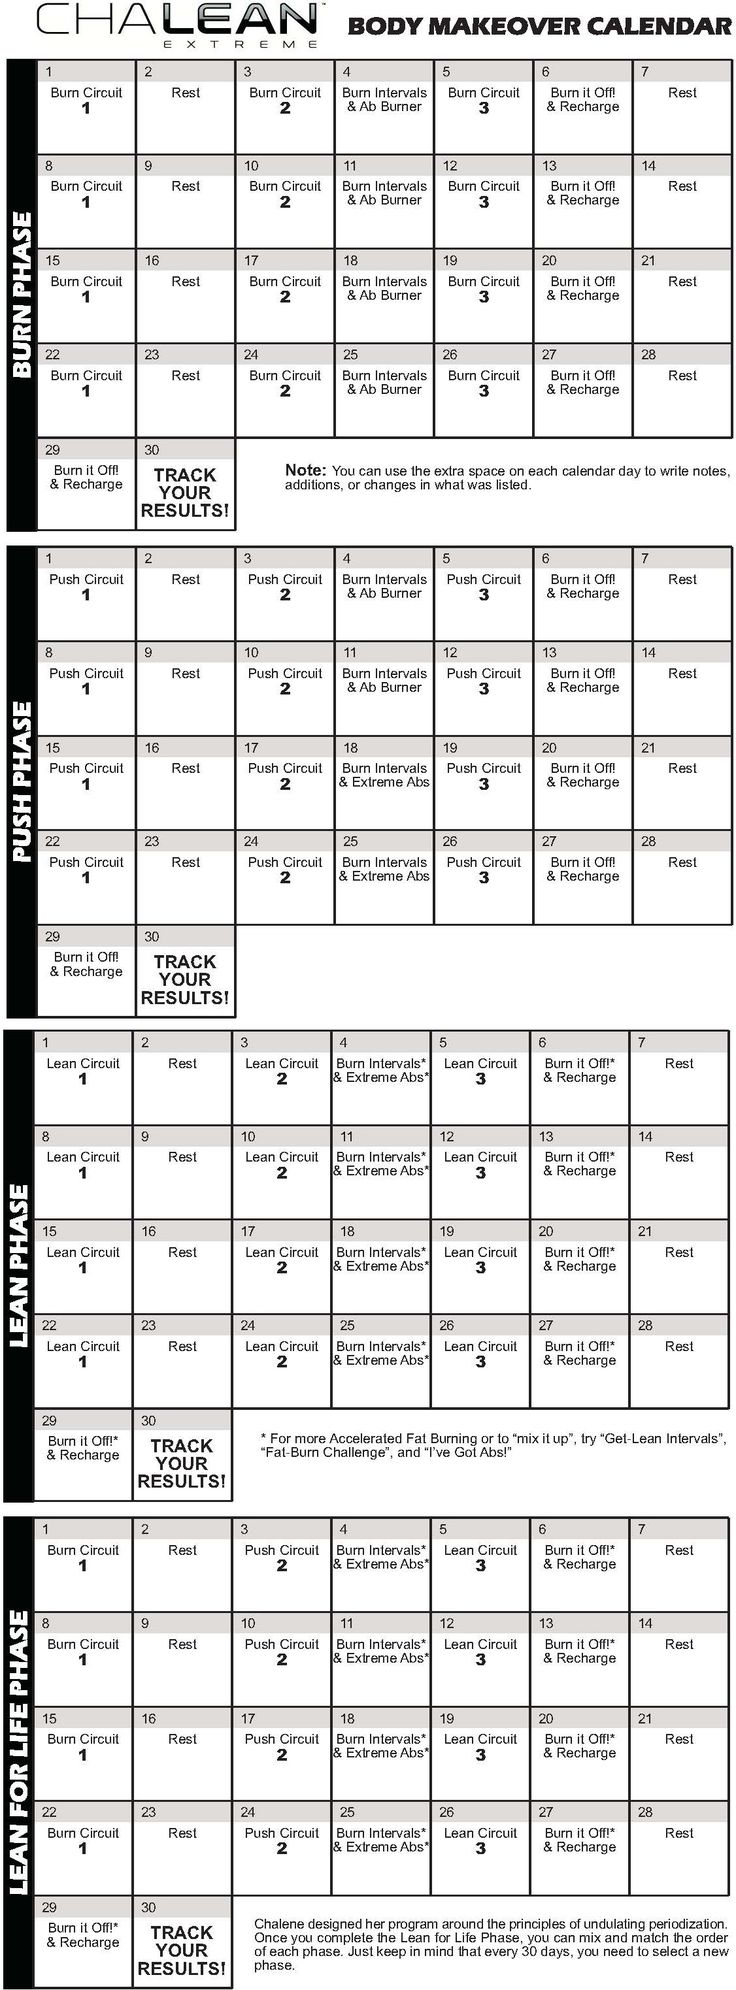 Worksheets Chalean Extreme Worksheets 30 best chalean extreme images on pinterest beachbody workout calendar ari and i are in week 3 of the burn phase